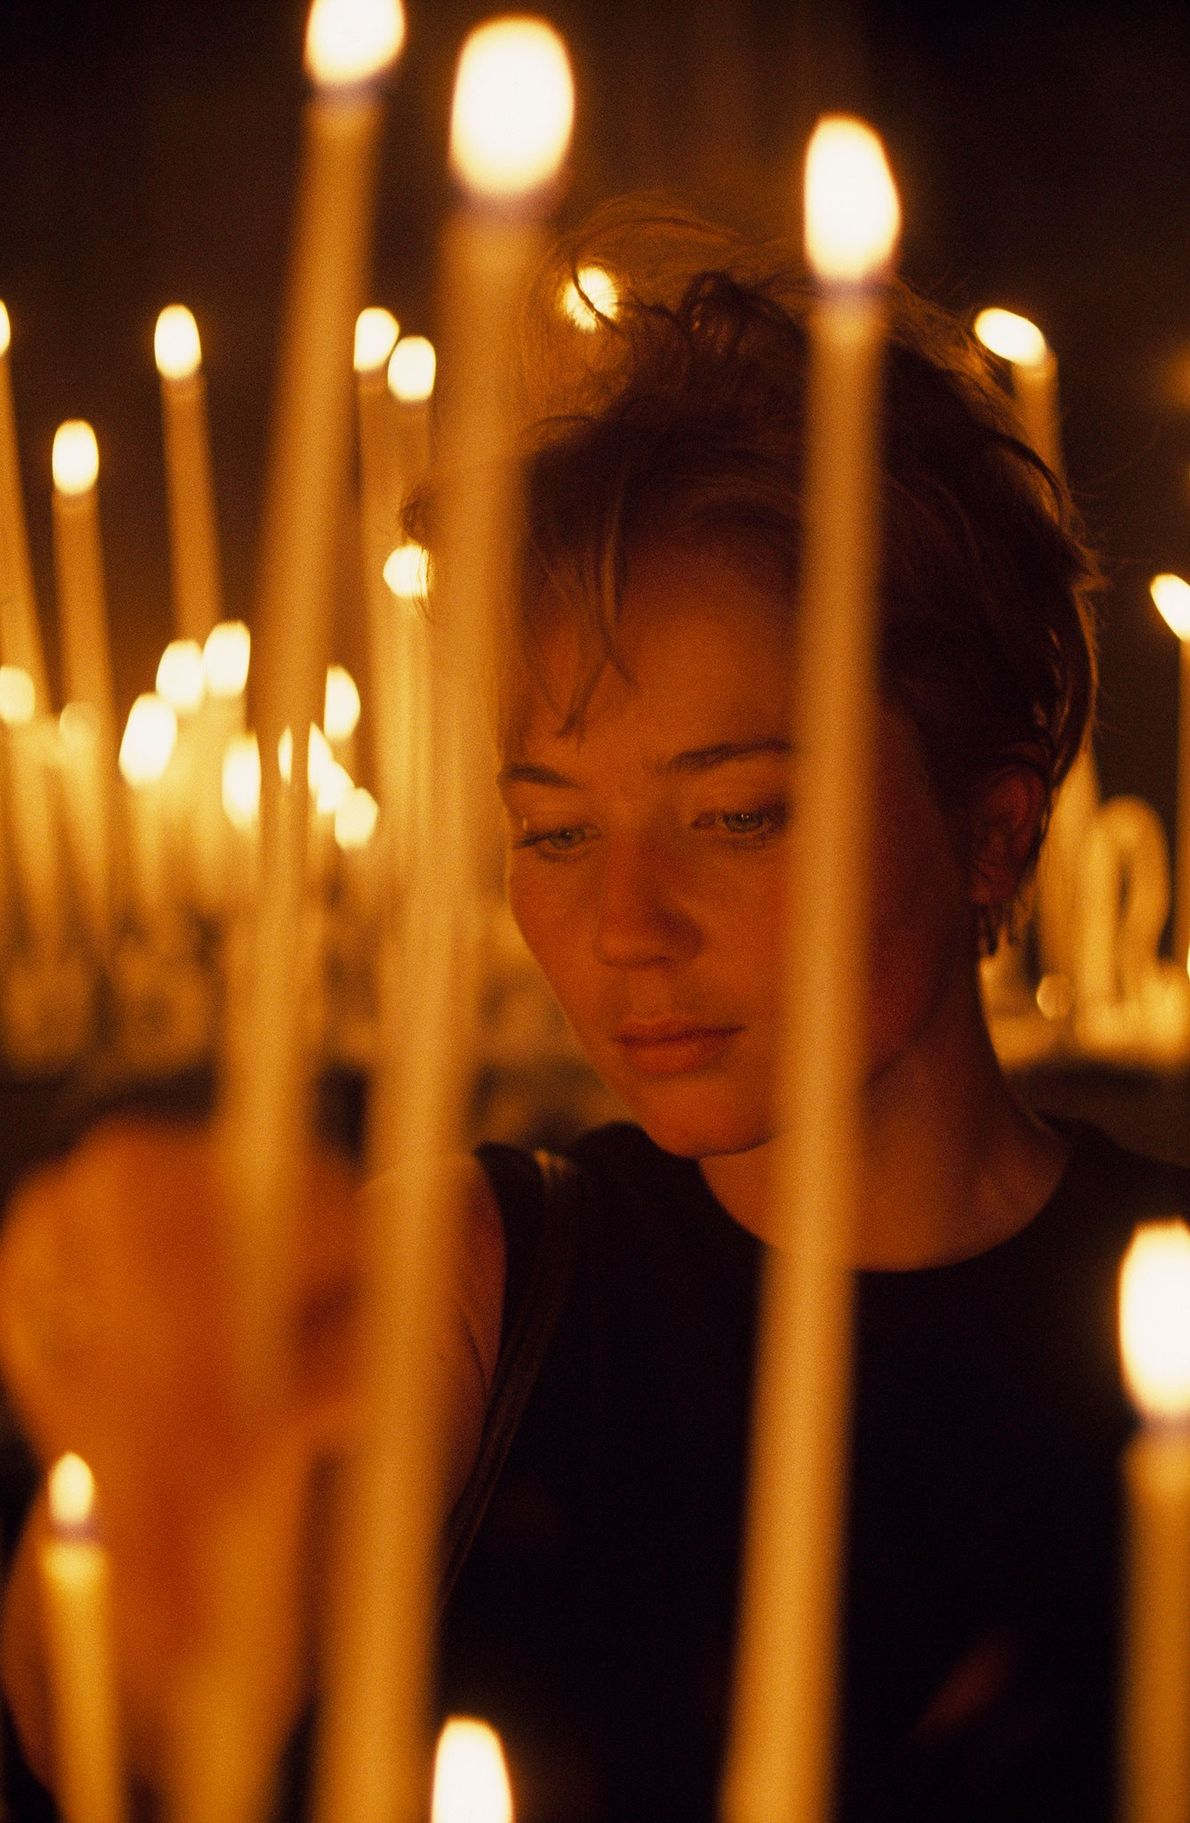 An American visitor lights a candle in the cathedral in 1968.